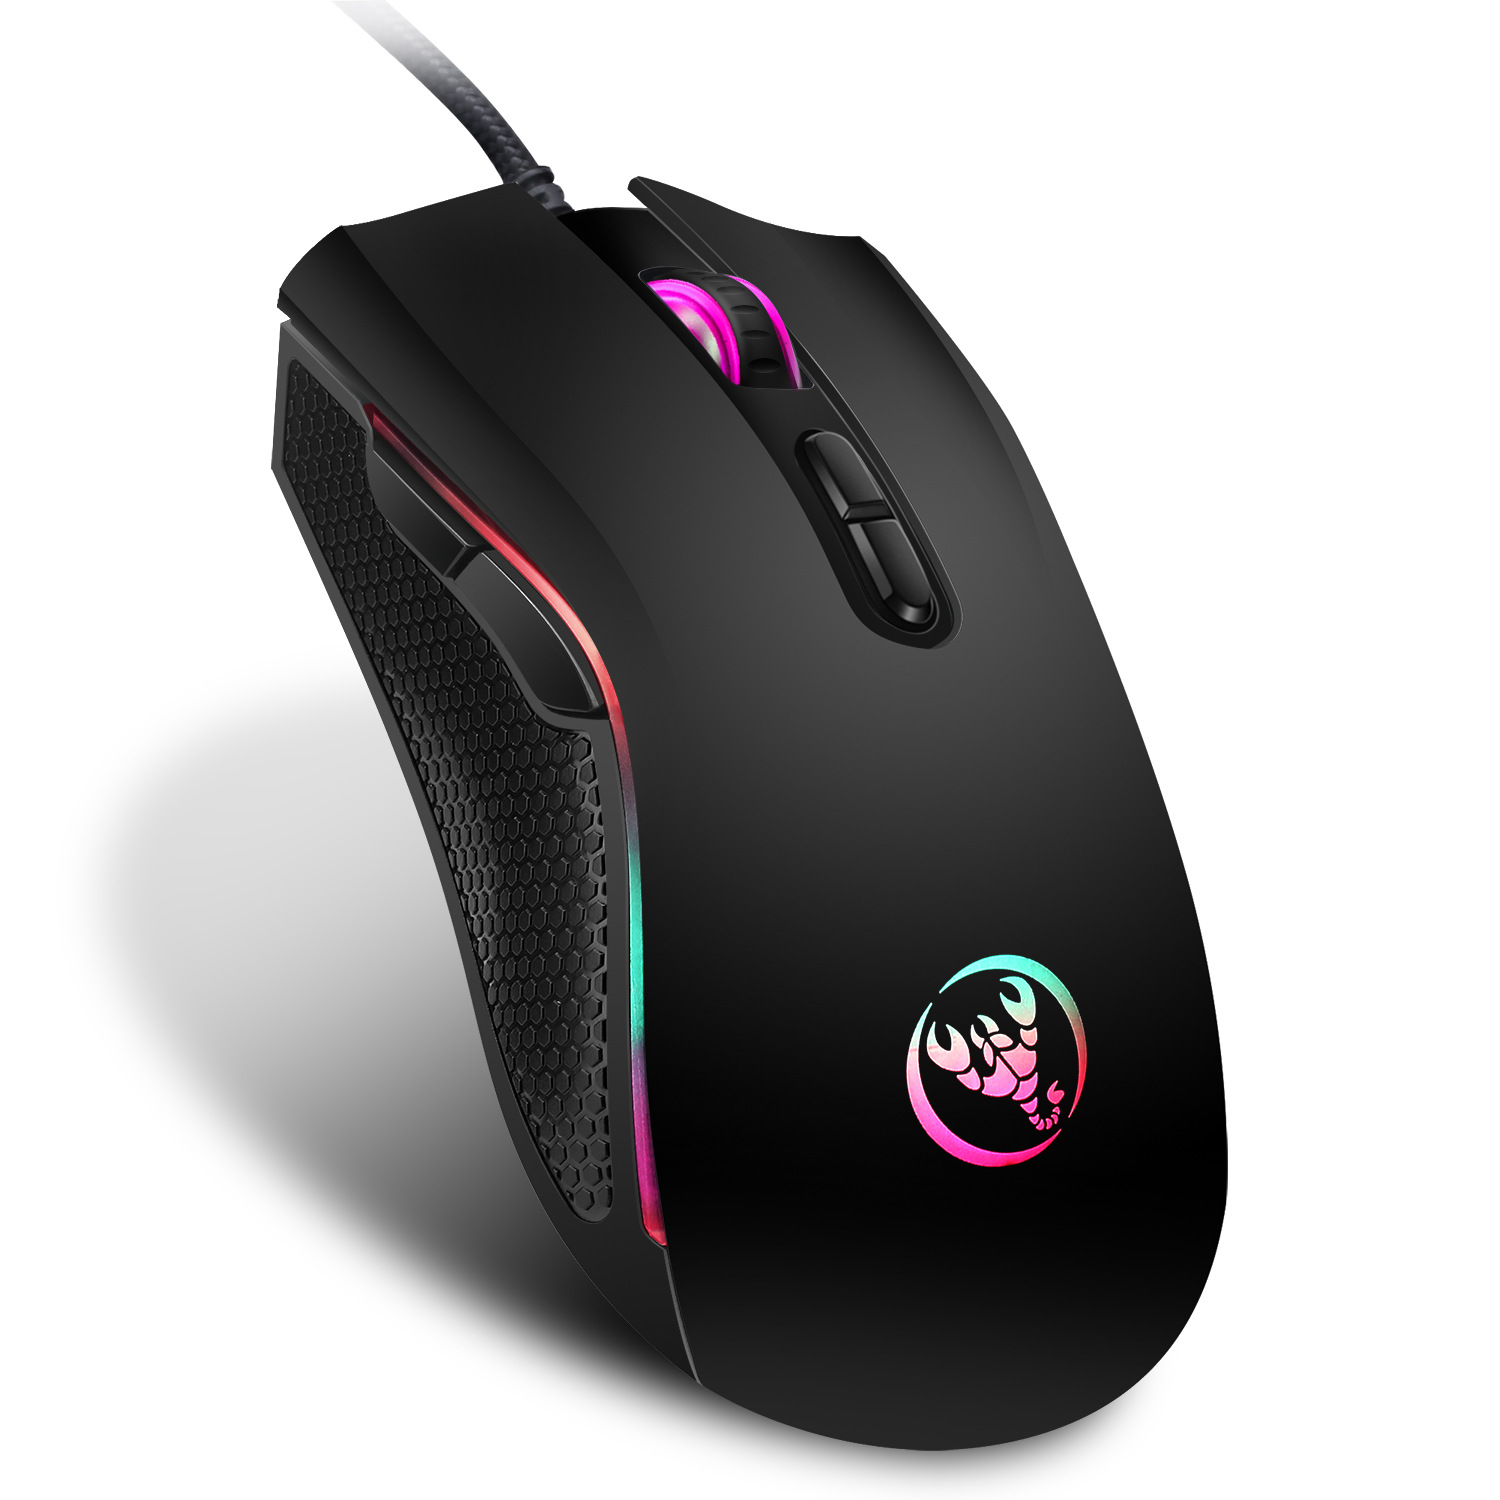 Fashion USB Gaming Wired Mouse LED Colorful Breathing 3200DPI Optical Computer Mini Mouse For PC Laptop Office Mice Silence